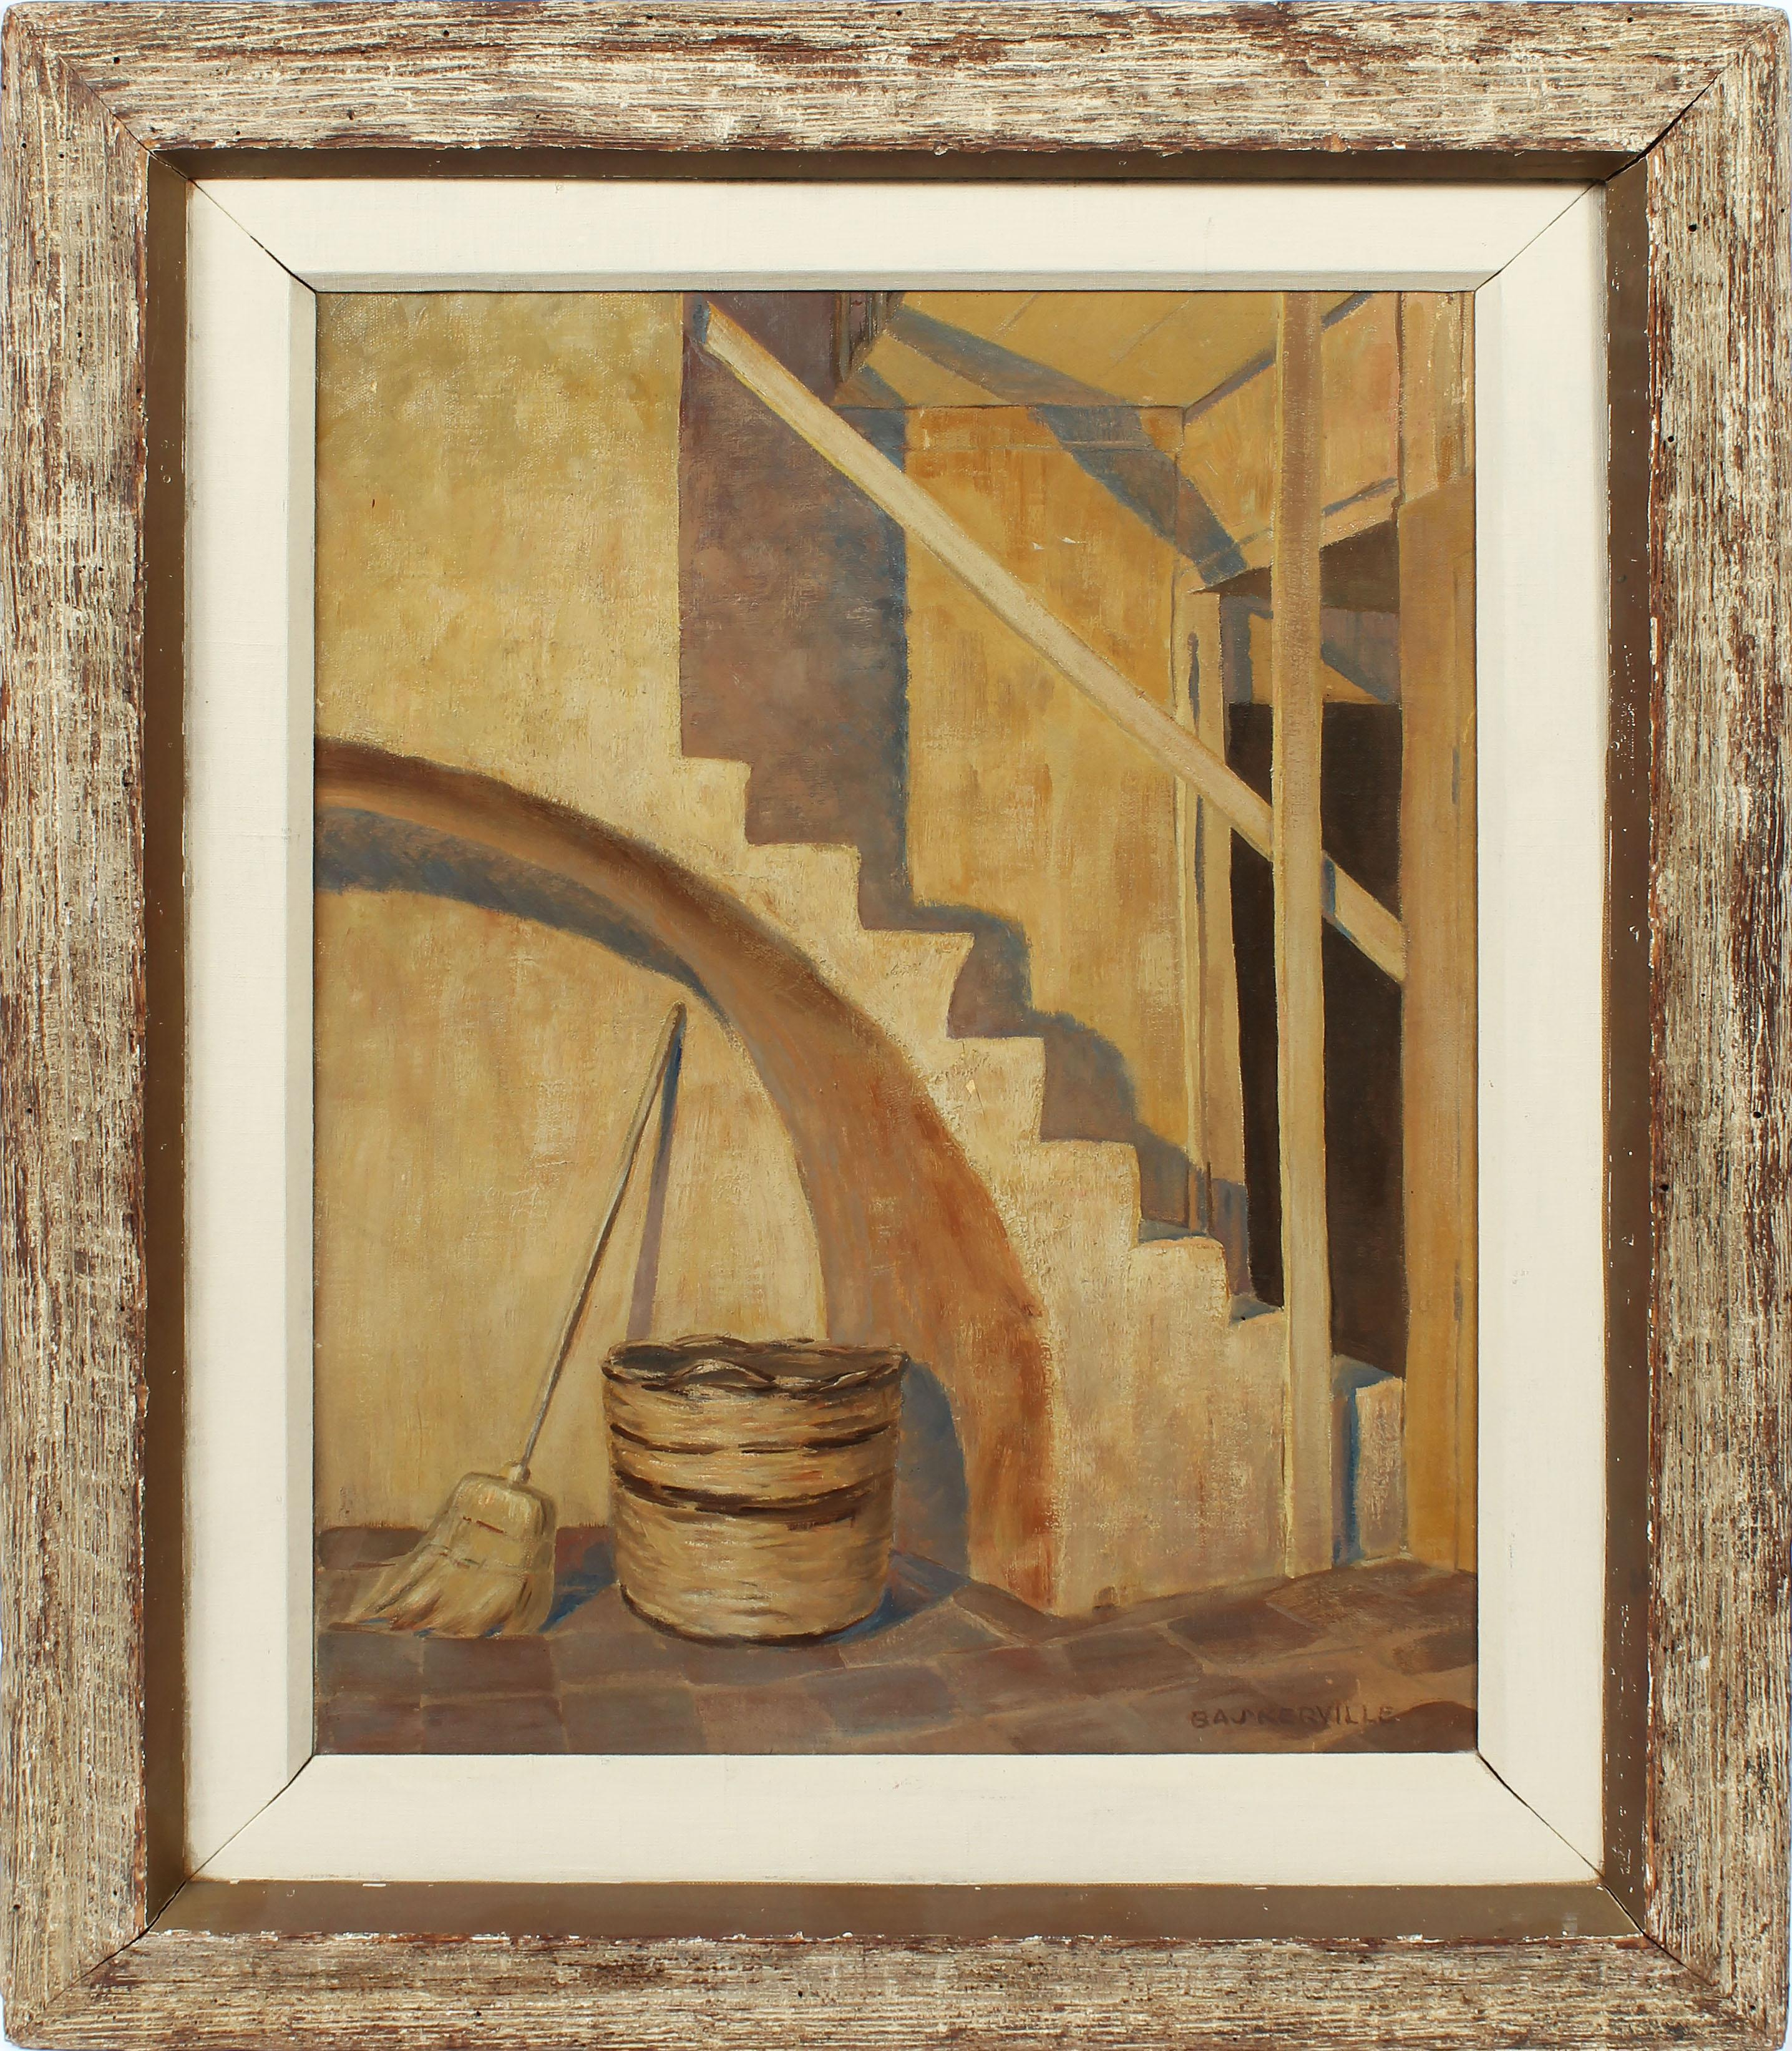 Antique Modernist Southern School Courtyard Charles Baskerville Oil Painting